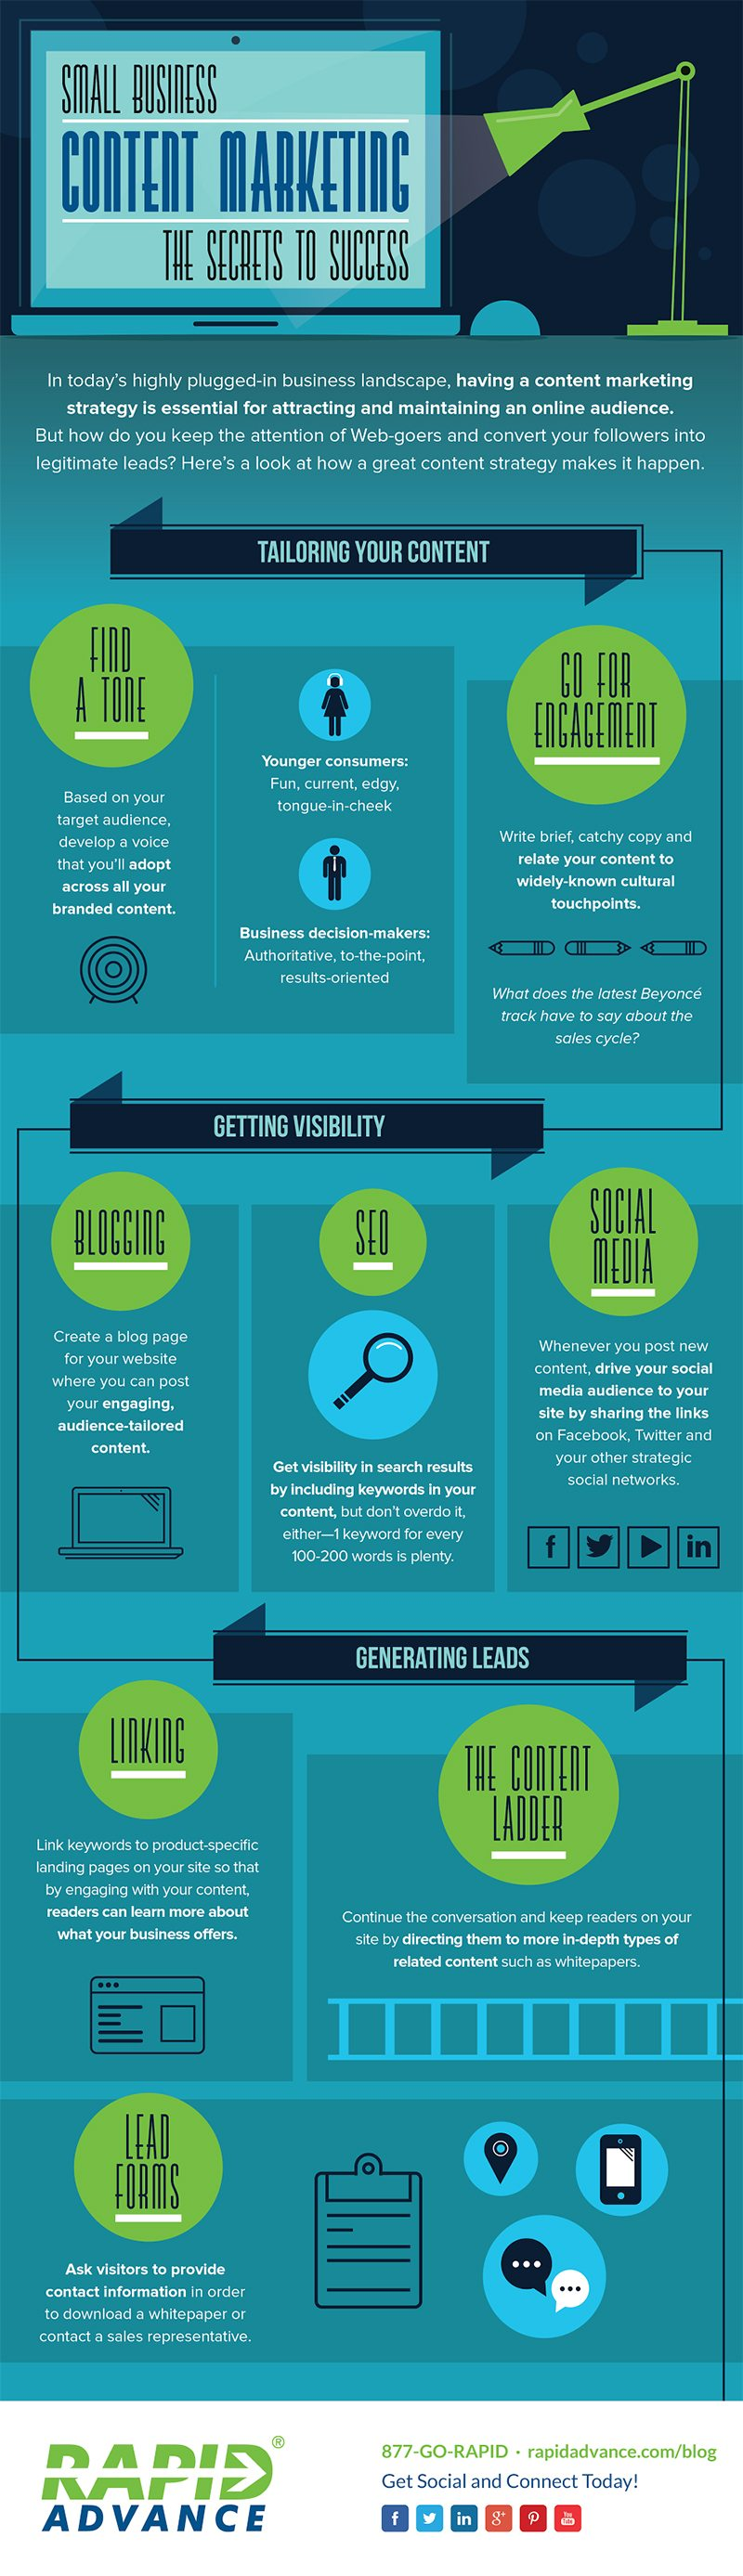 8 Fantastic Tips For A Content Marketing Strategy Tha